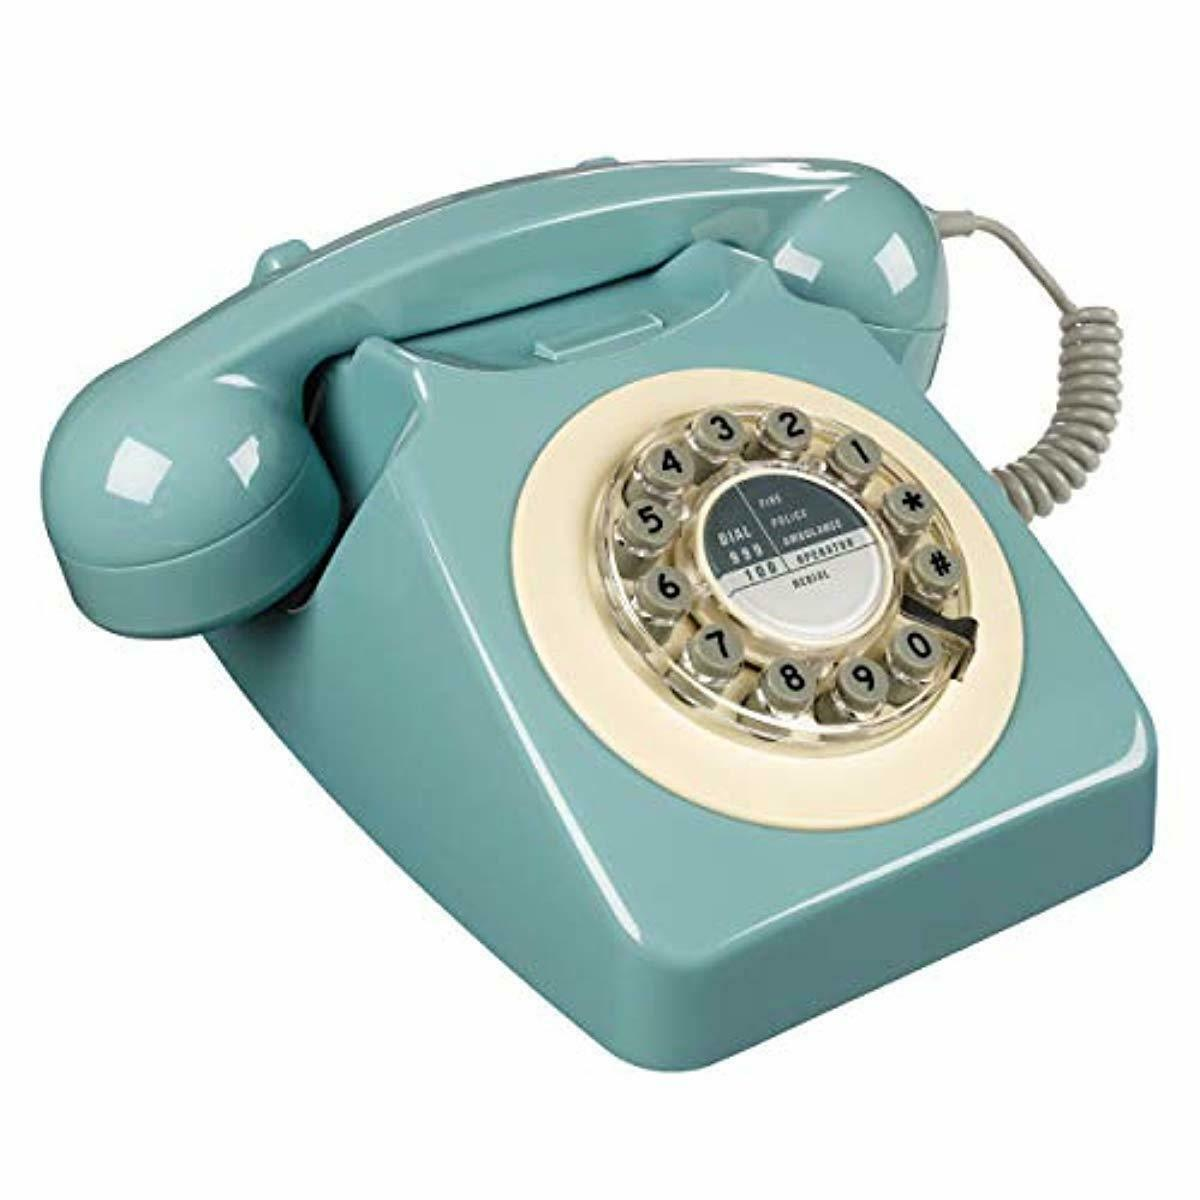 Old School 80s 90s Time ROTARY Telephone Fashioned Retro Lan